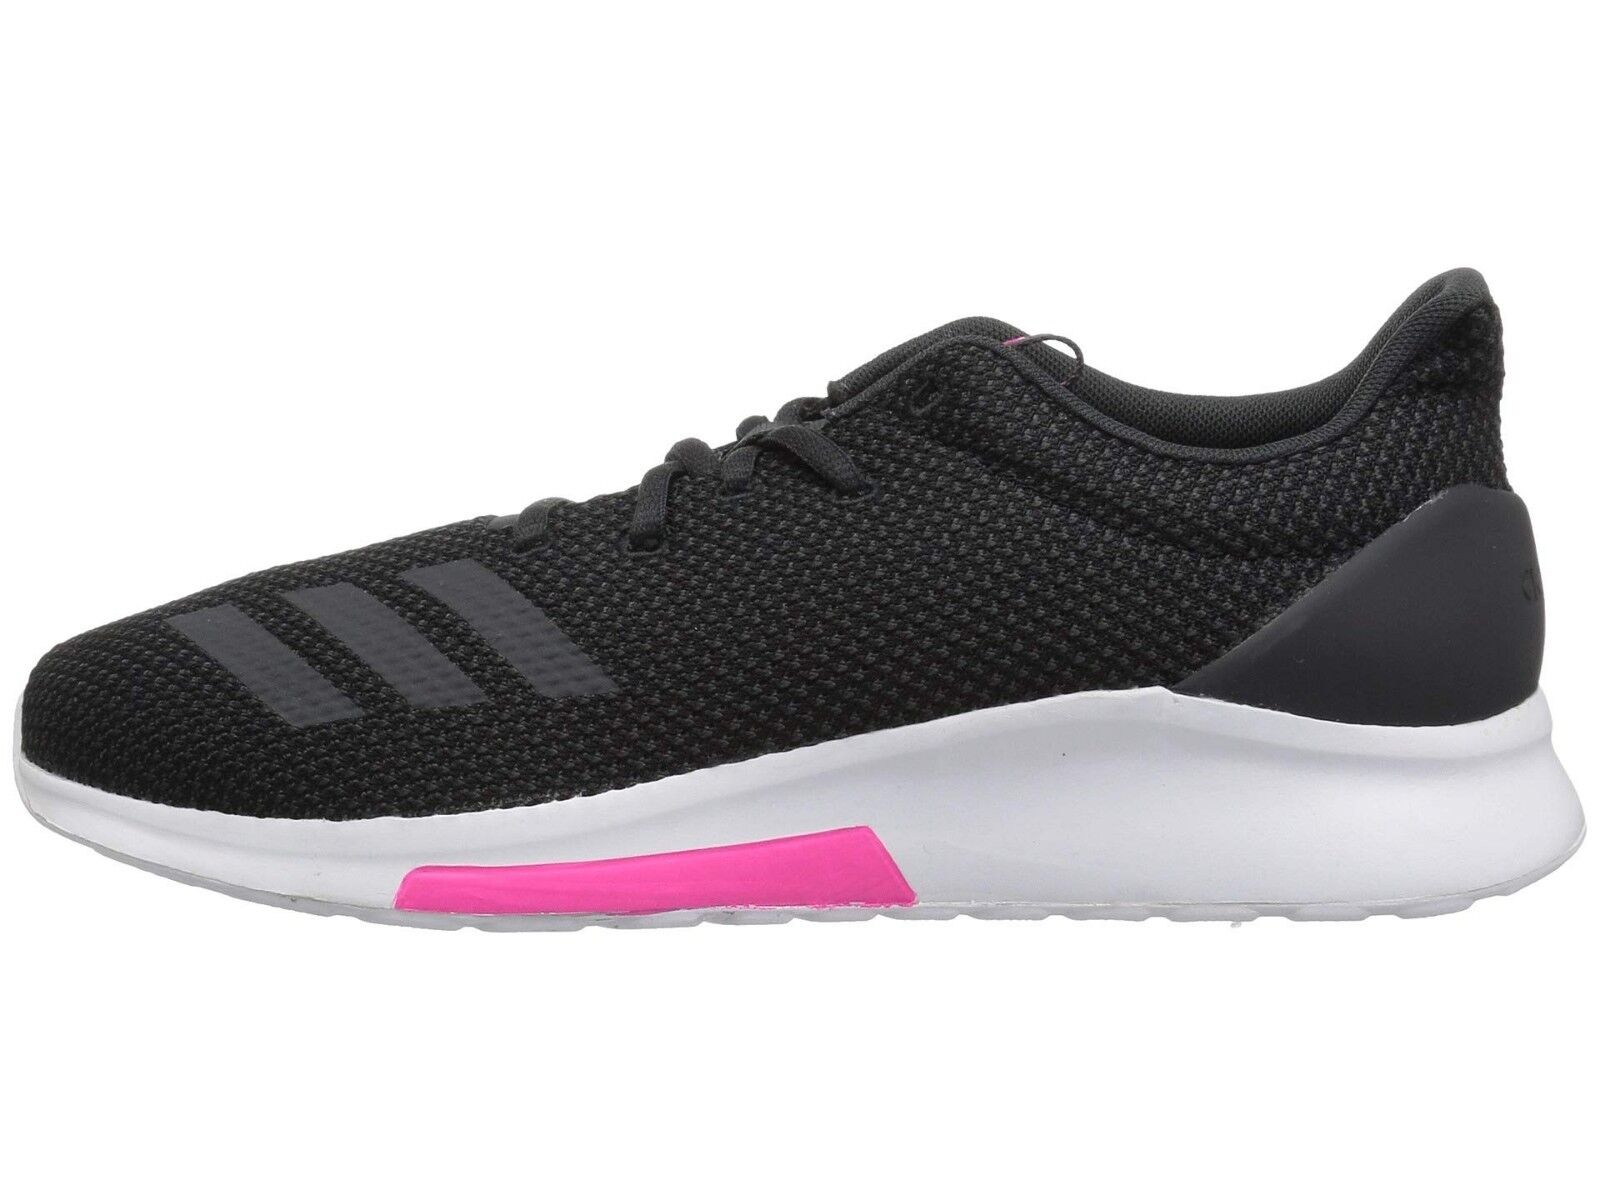 Women Adidas Puremotion Running Shoe B96549 Black/Carbon/Shock Pink Brand New 1